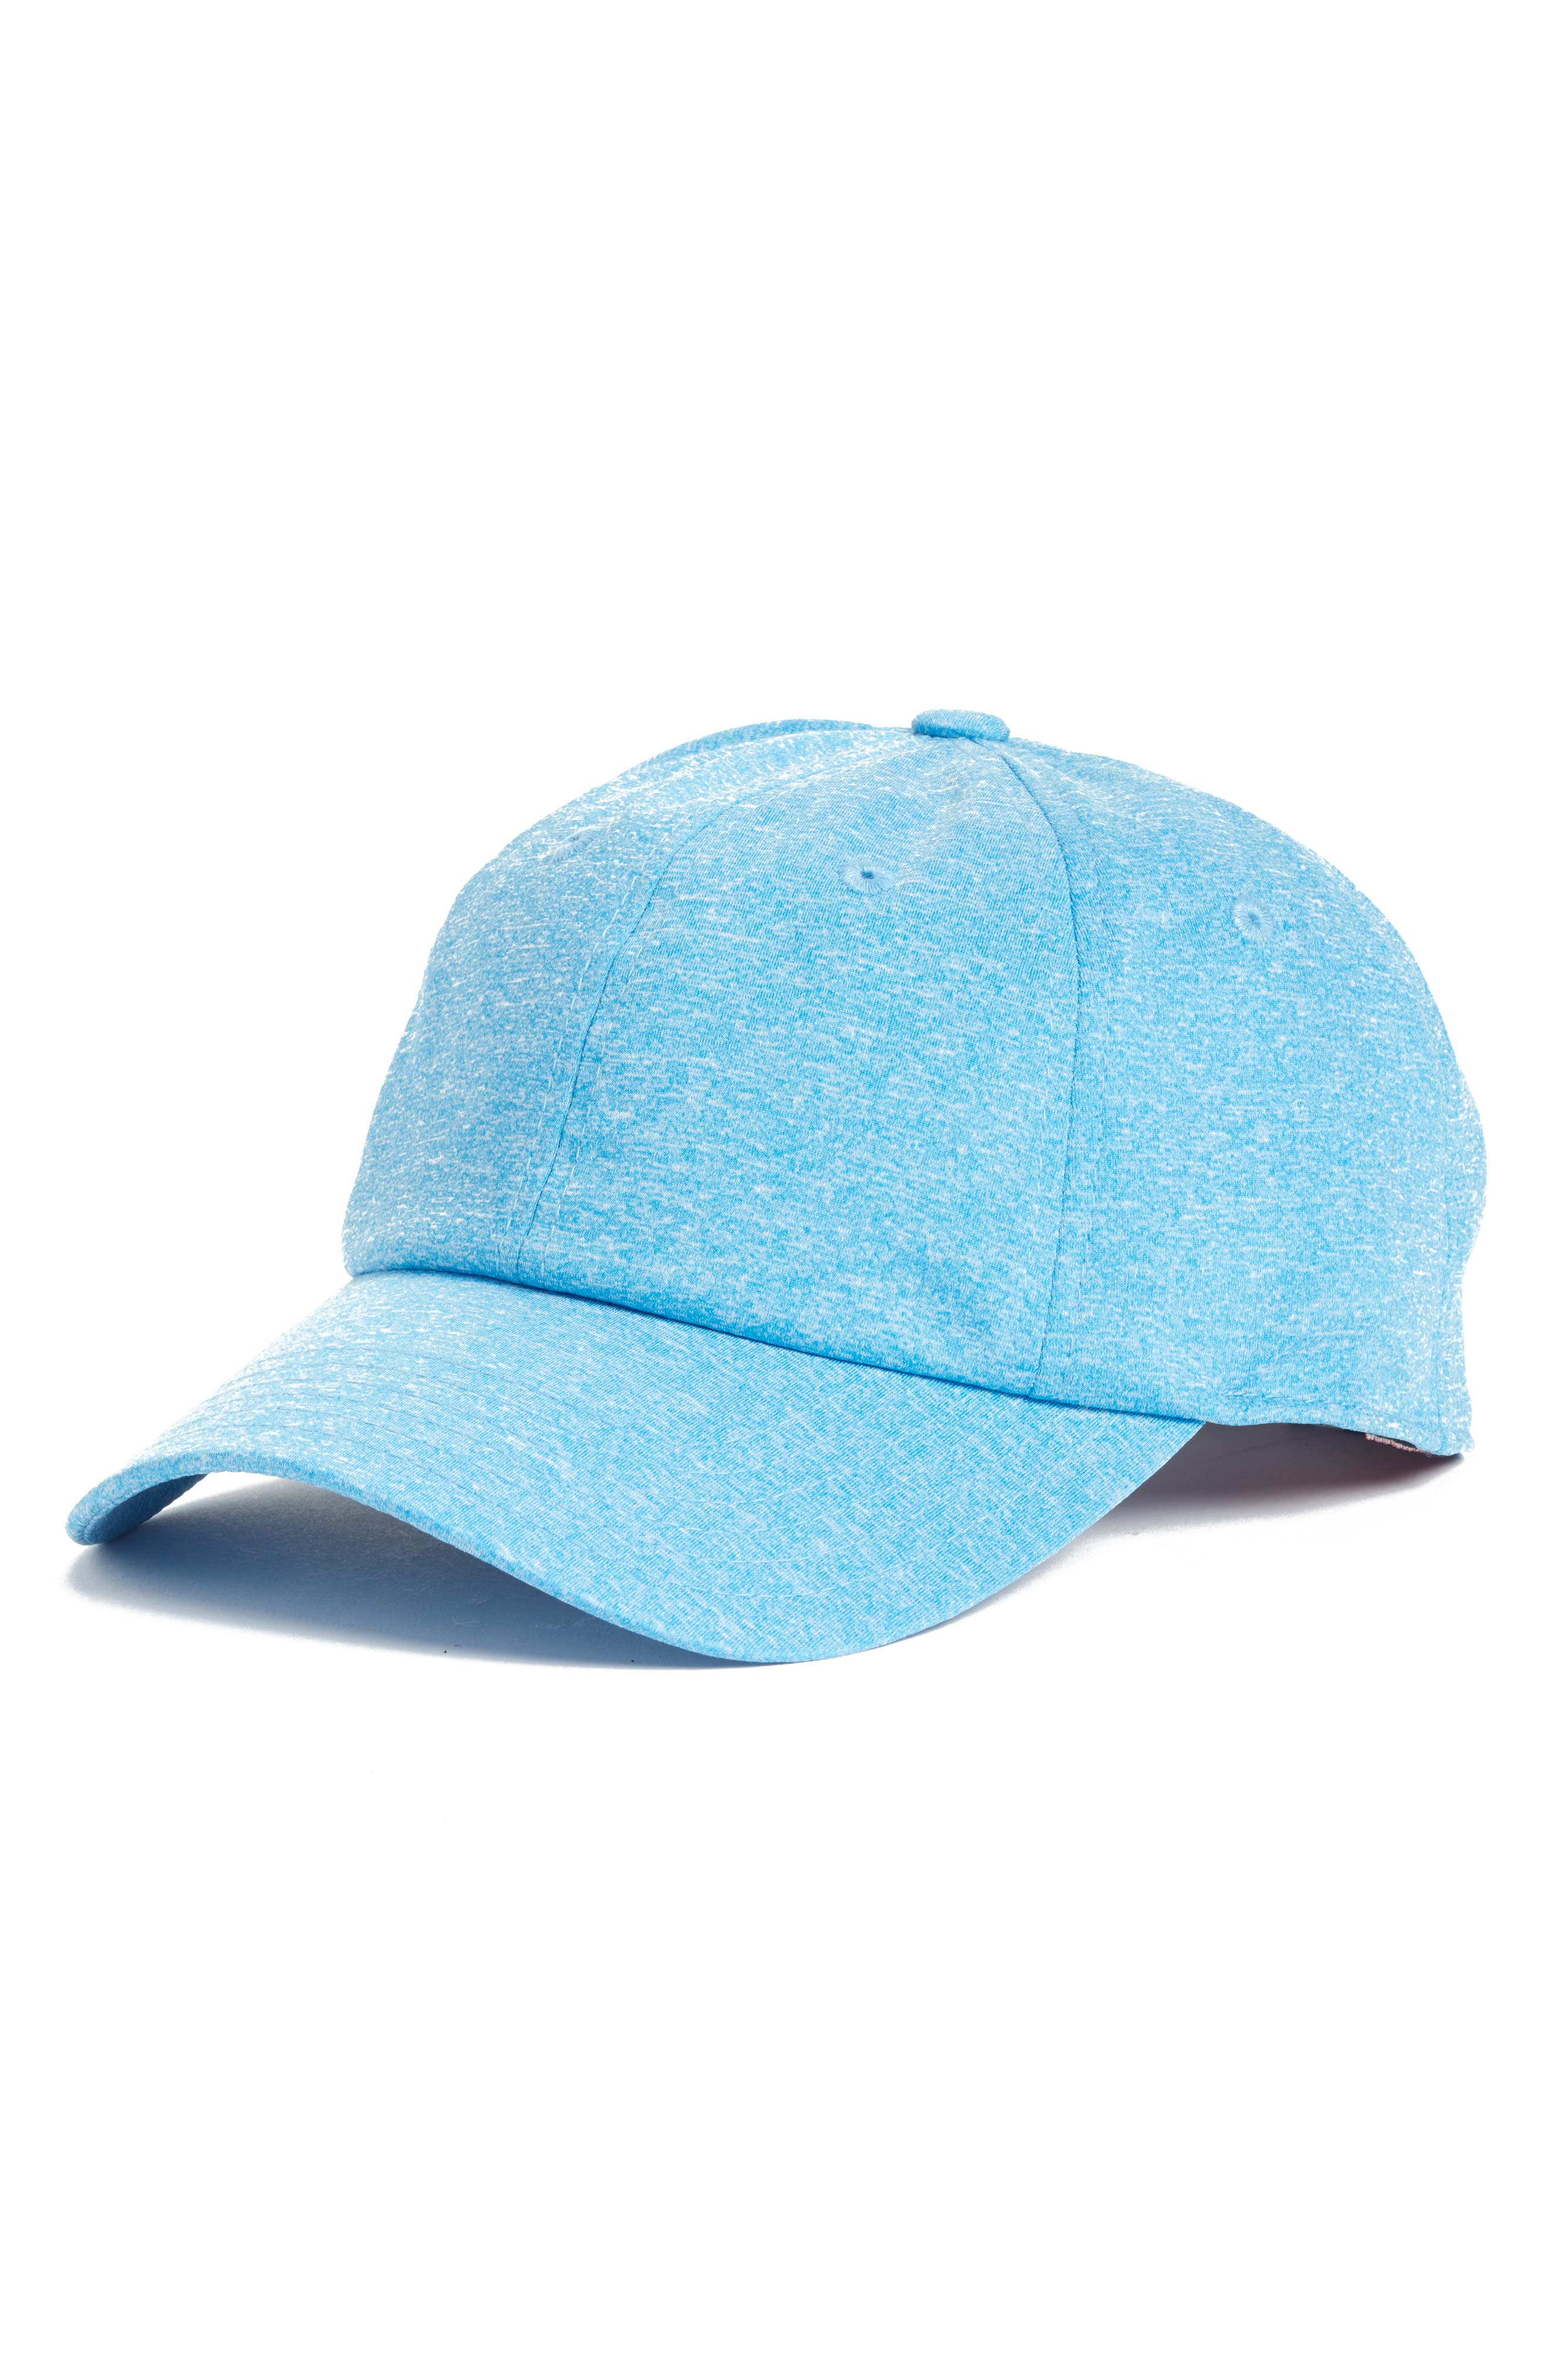 Main Image - American Needle Heathered Tech Hat